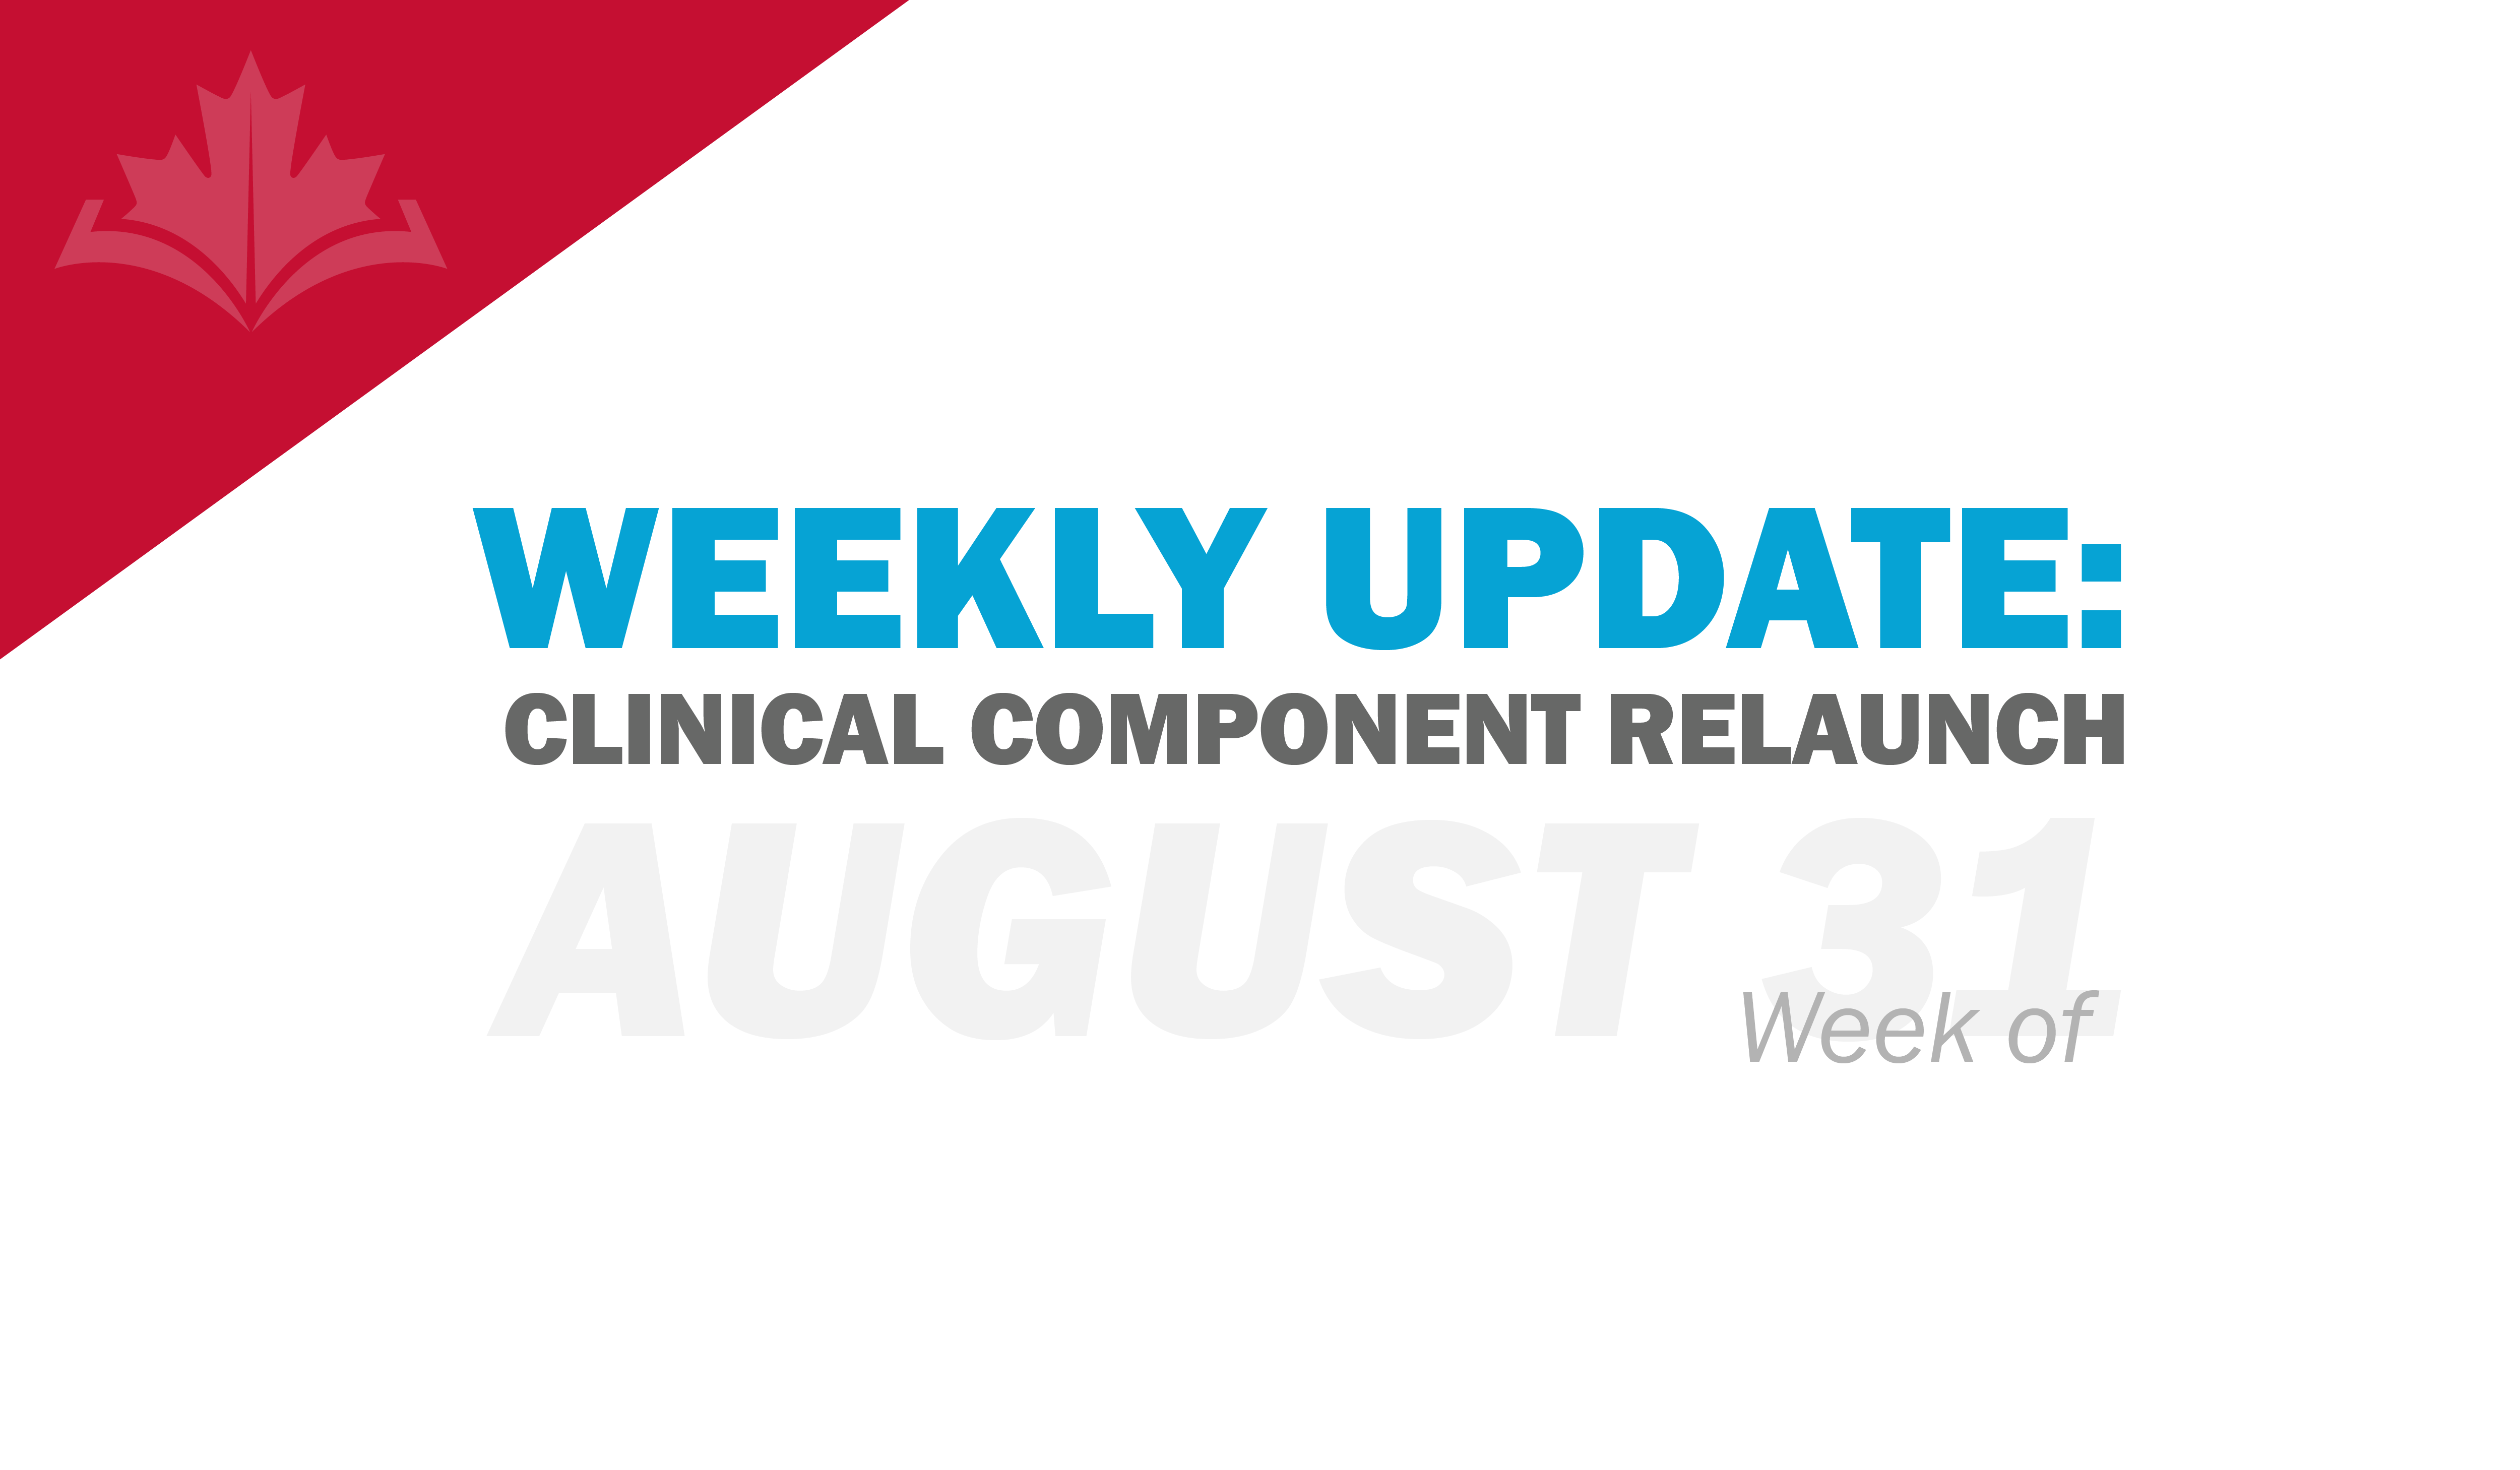 Clinical Component Update -Week of August 30th